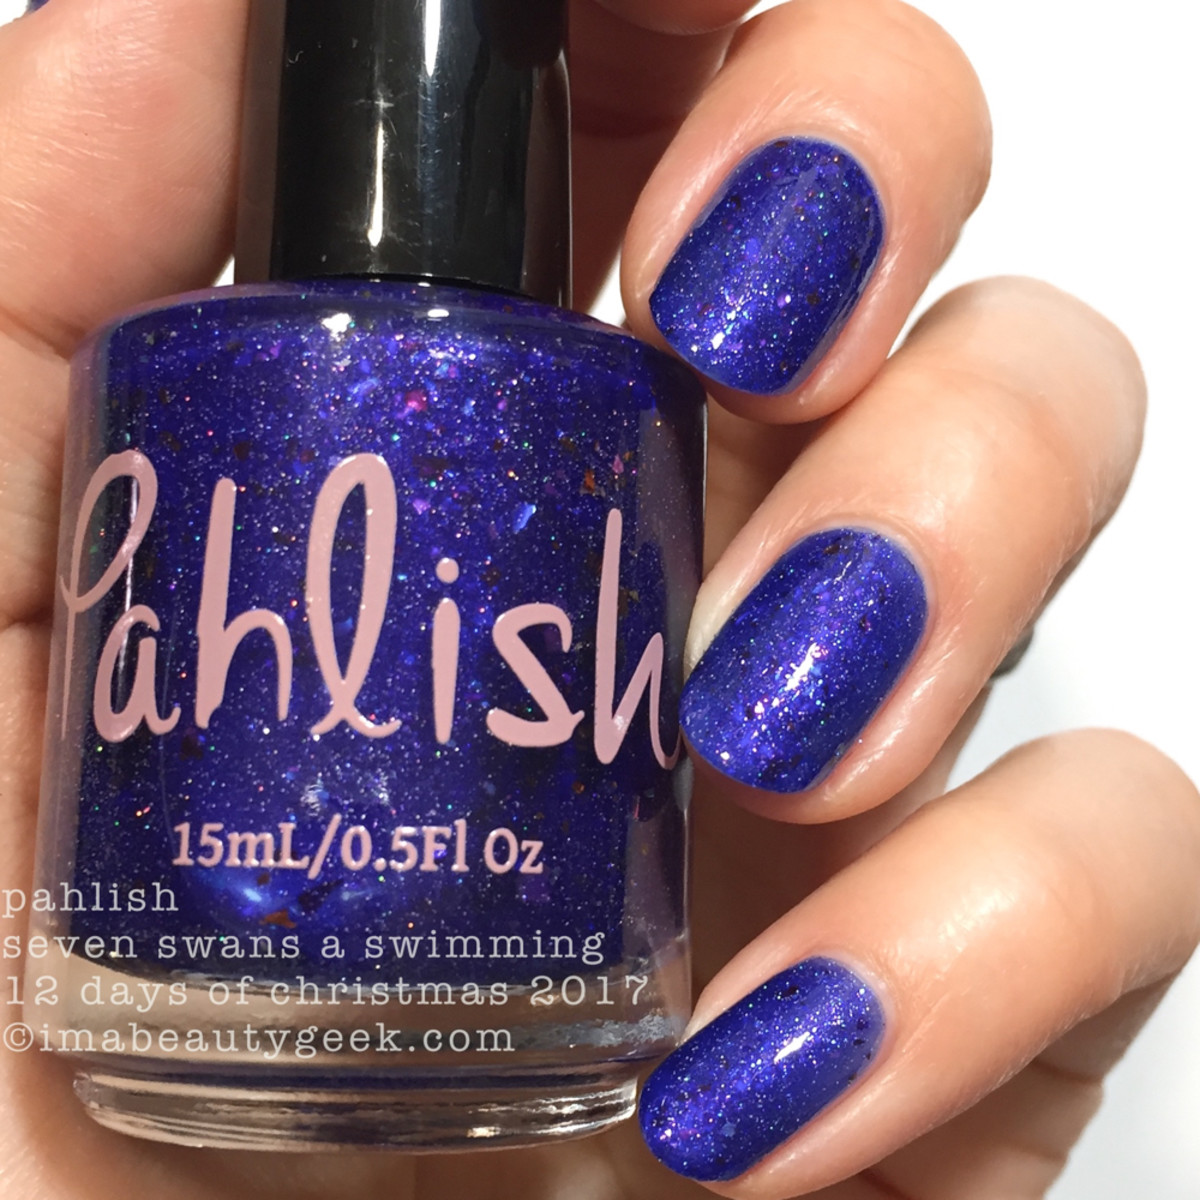 Pahlish Seven Swans a Swimming - Pahlish 12 Days of Christmas 2017 2